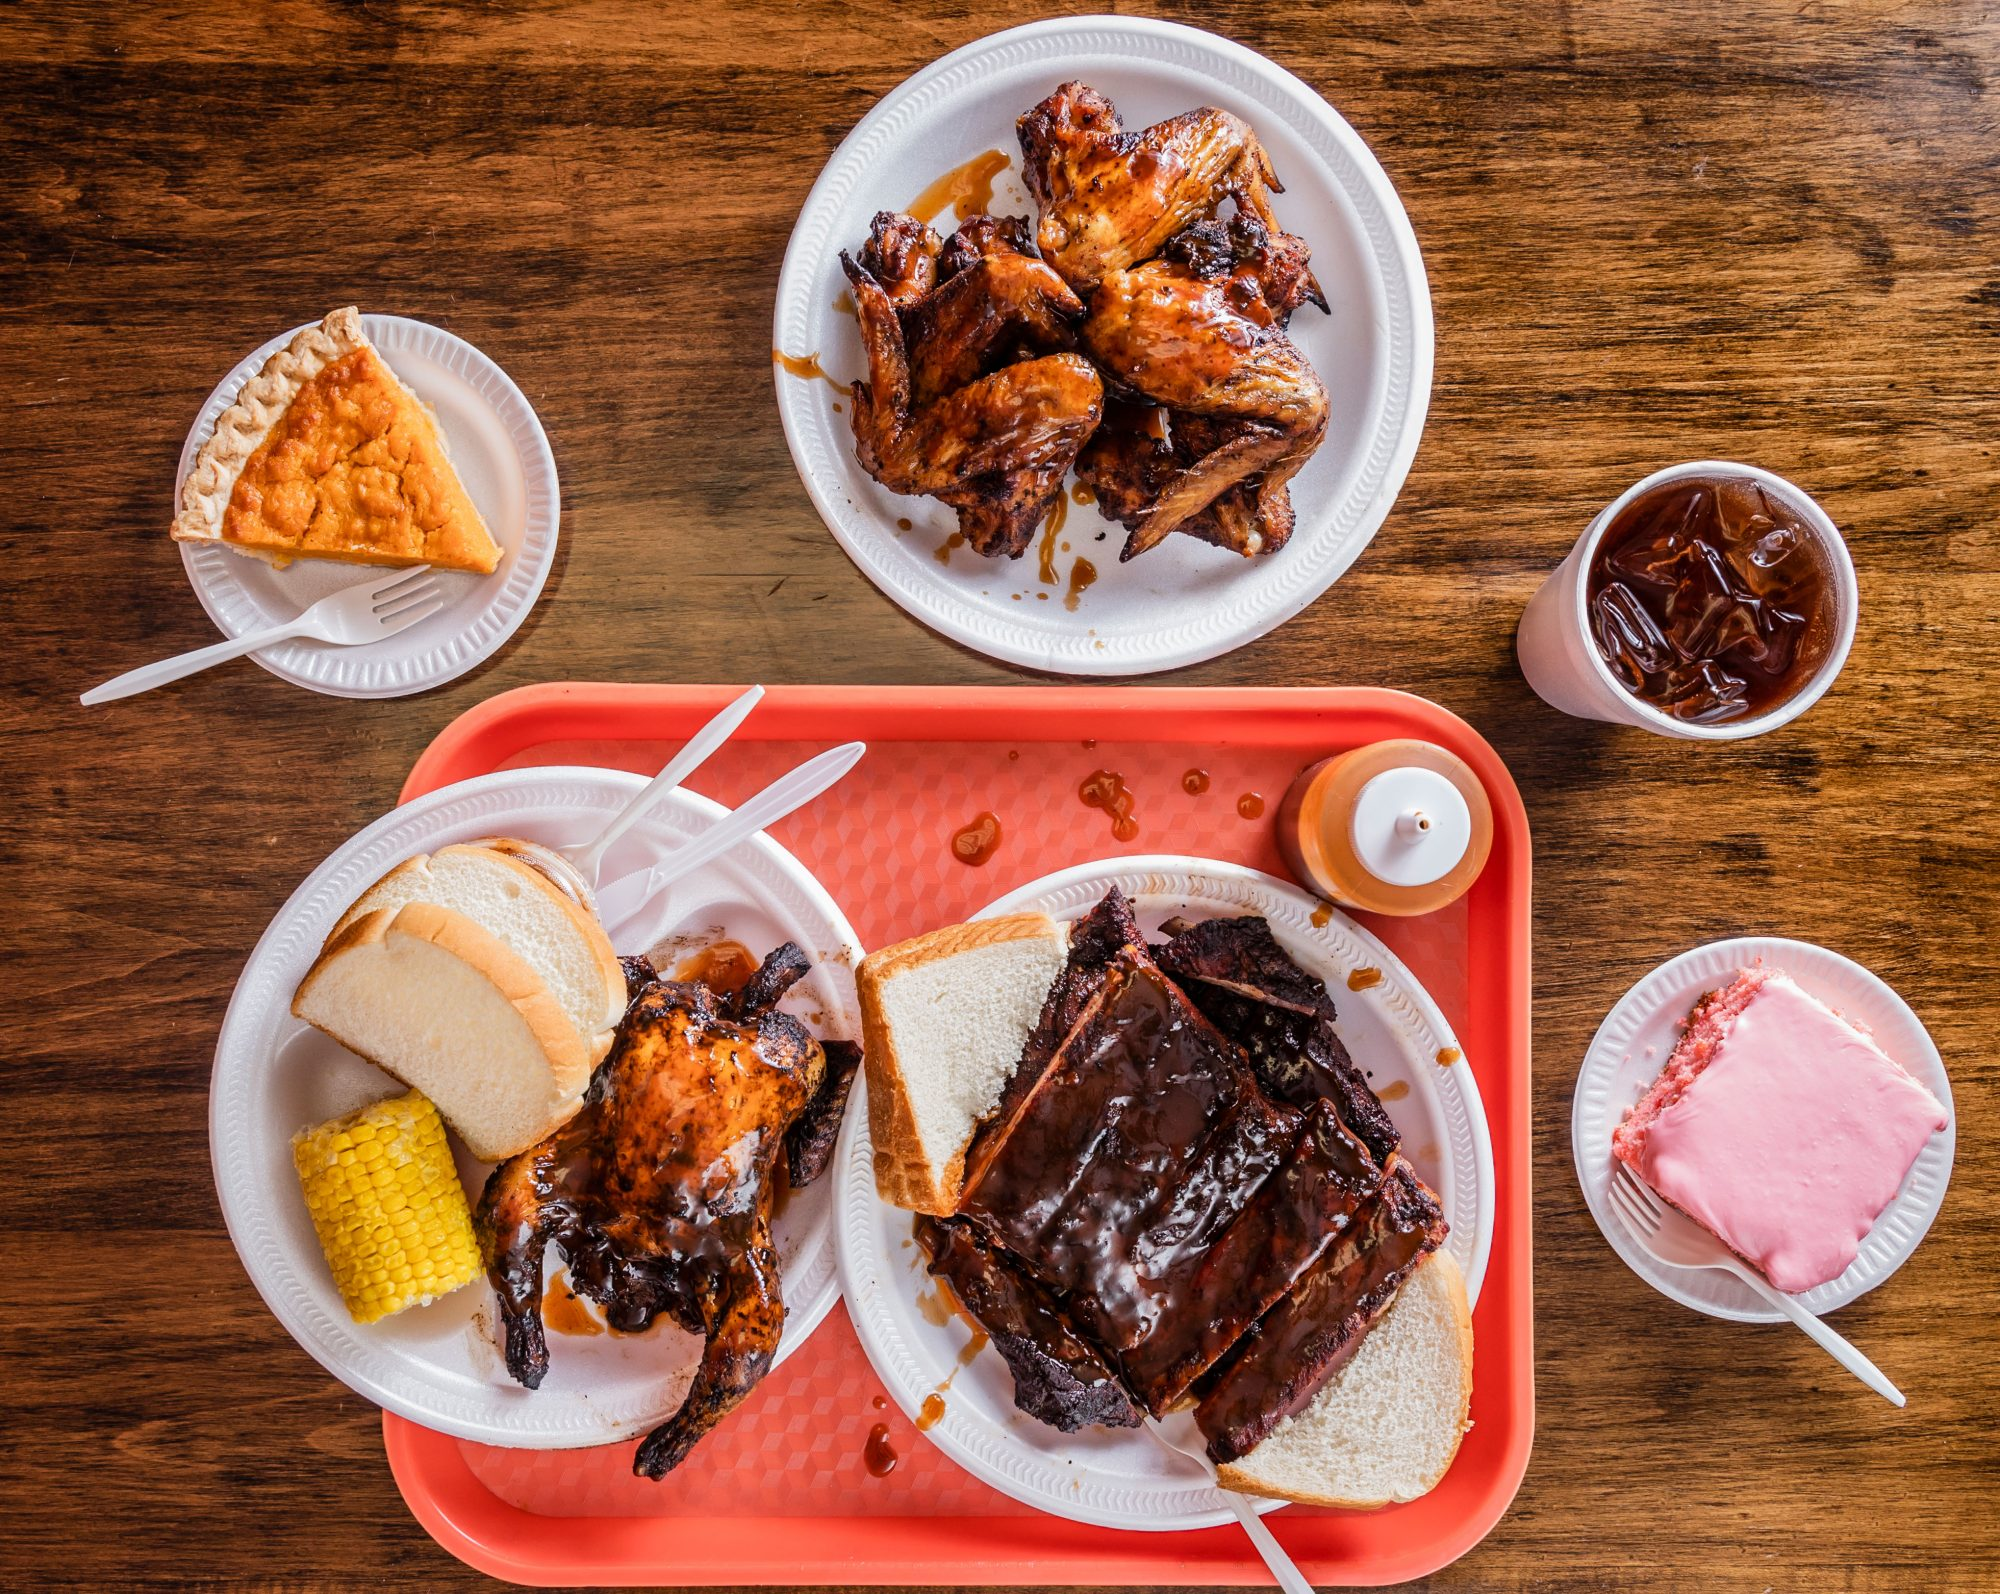 Sampling of BBQ and Sides Offered at Cozy Corner BBQ in Memphis, TN